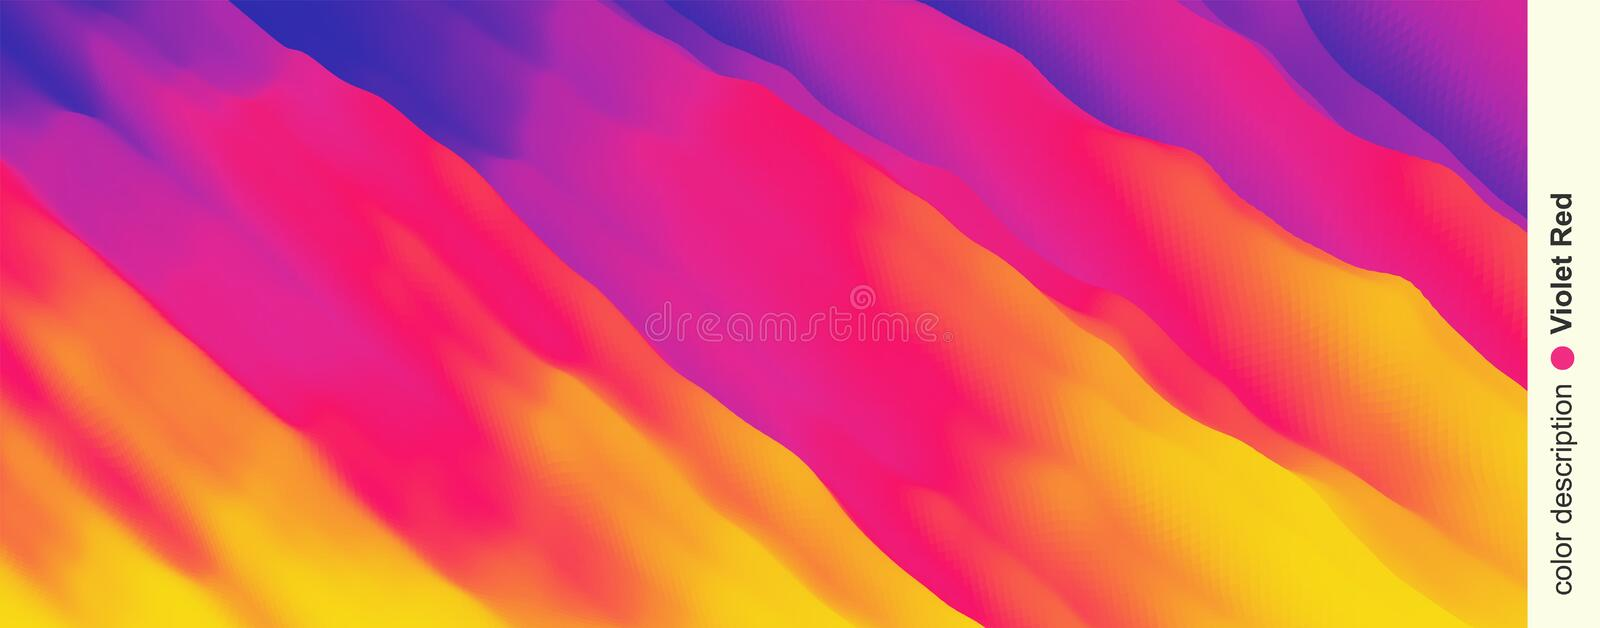 Abstract background with dynamic effect. Motion  Illustration..Trendy gradients. Can be used for advertising, marketing, vector illustration